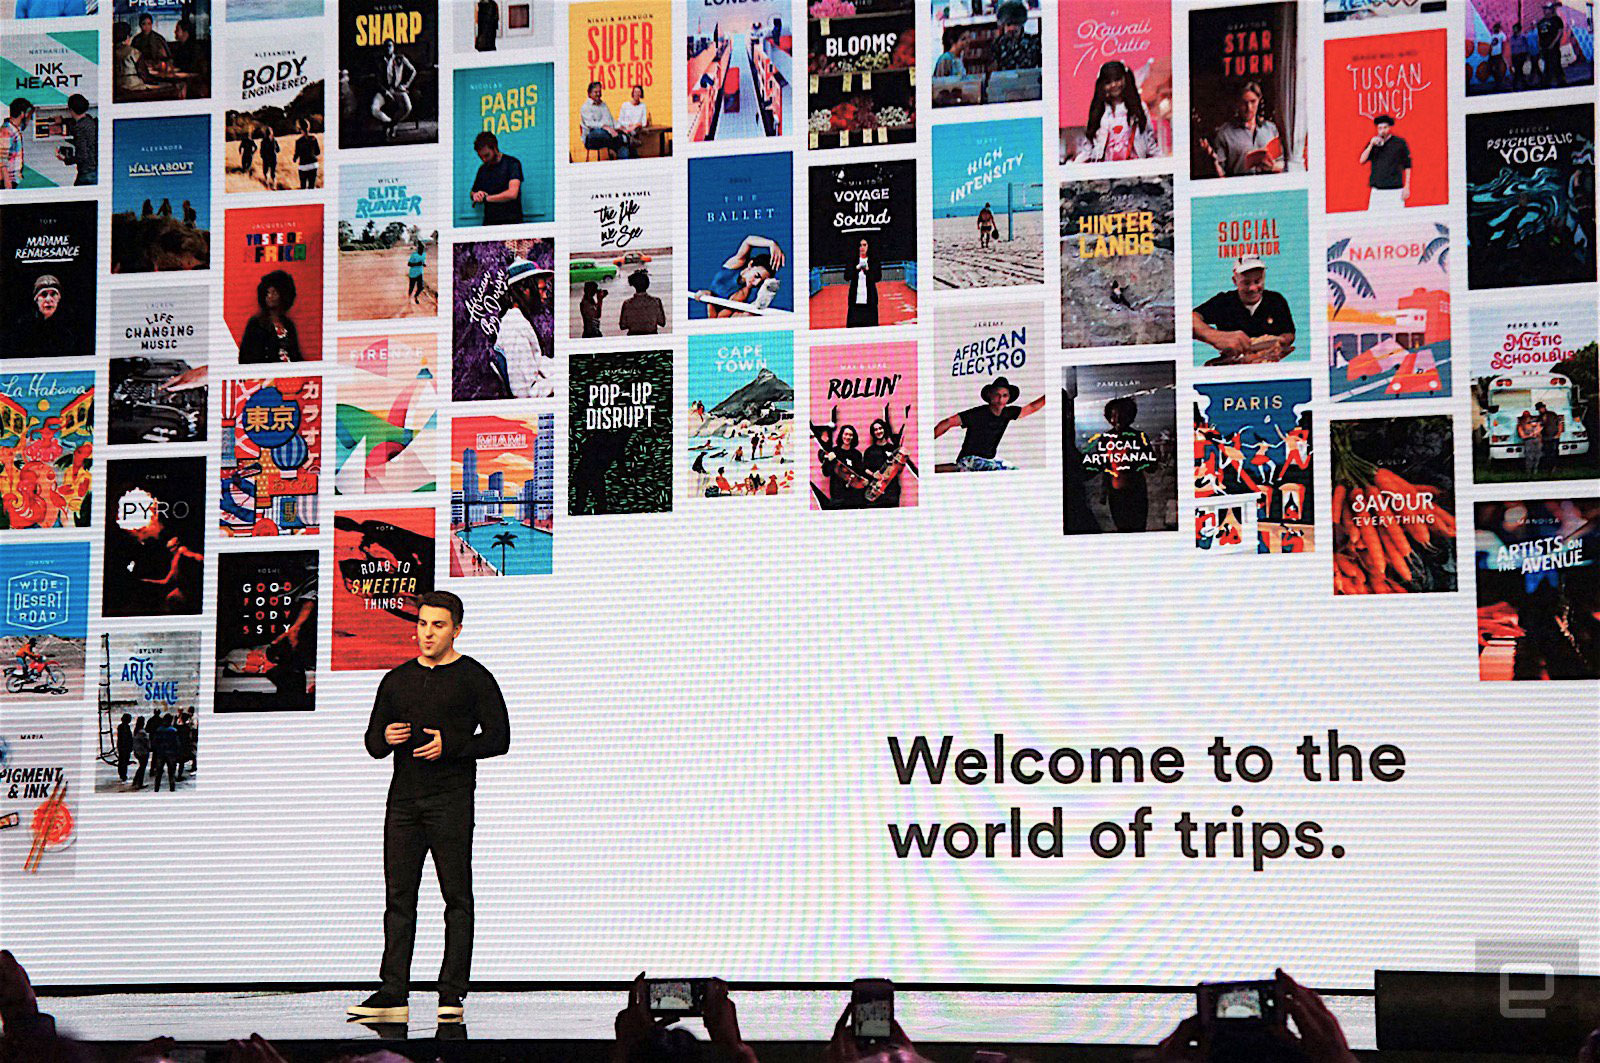 Browse Airbnb's vacation